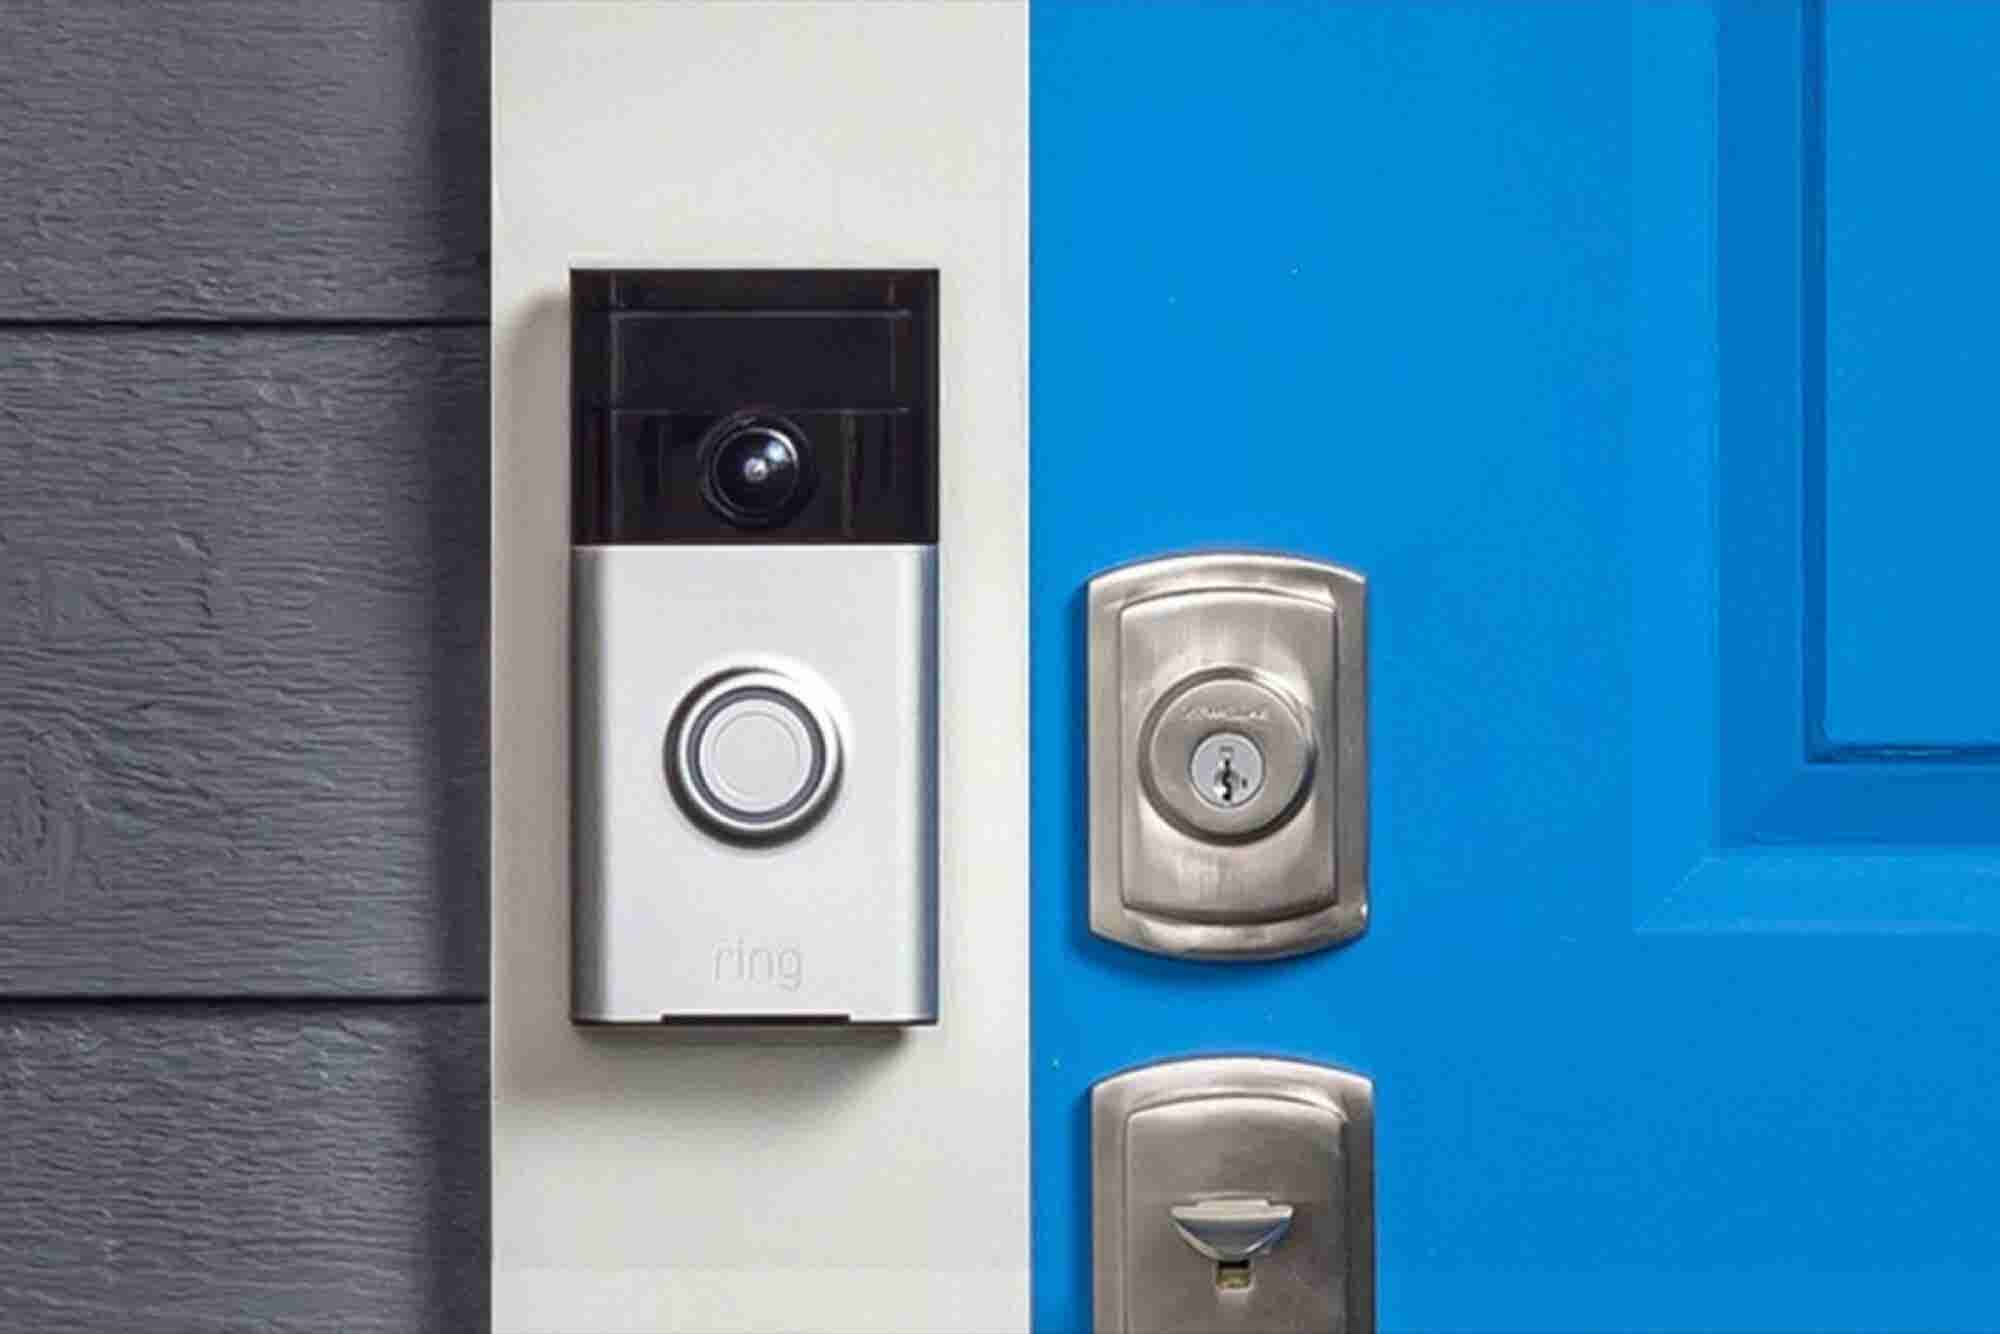 This Video Doorbell Lets You Answer Your Door With Your Smartphone